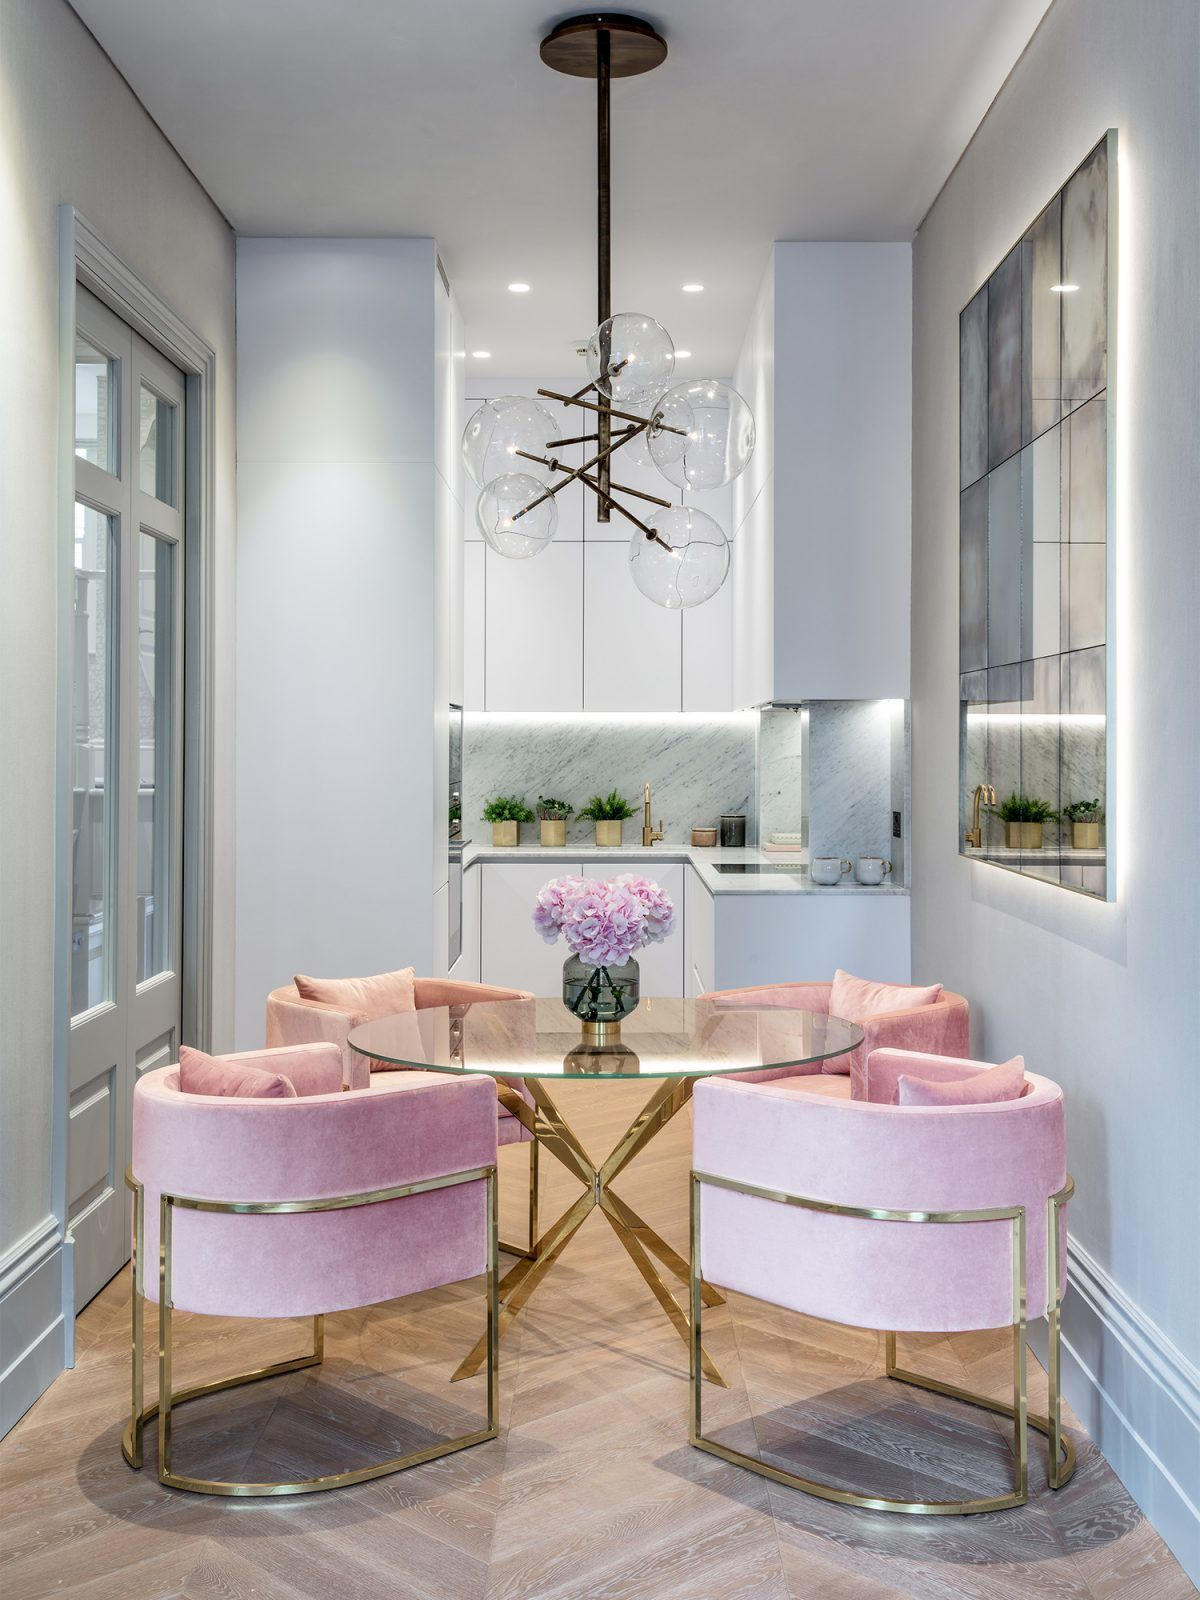 32 Stylish Dining Room Ideas To Impress Your Dinner Guests: Pink Velvet Chairs In Small London Apartment With Marble